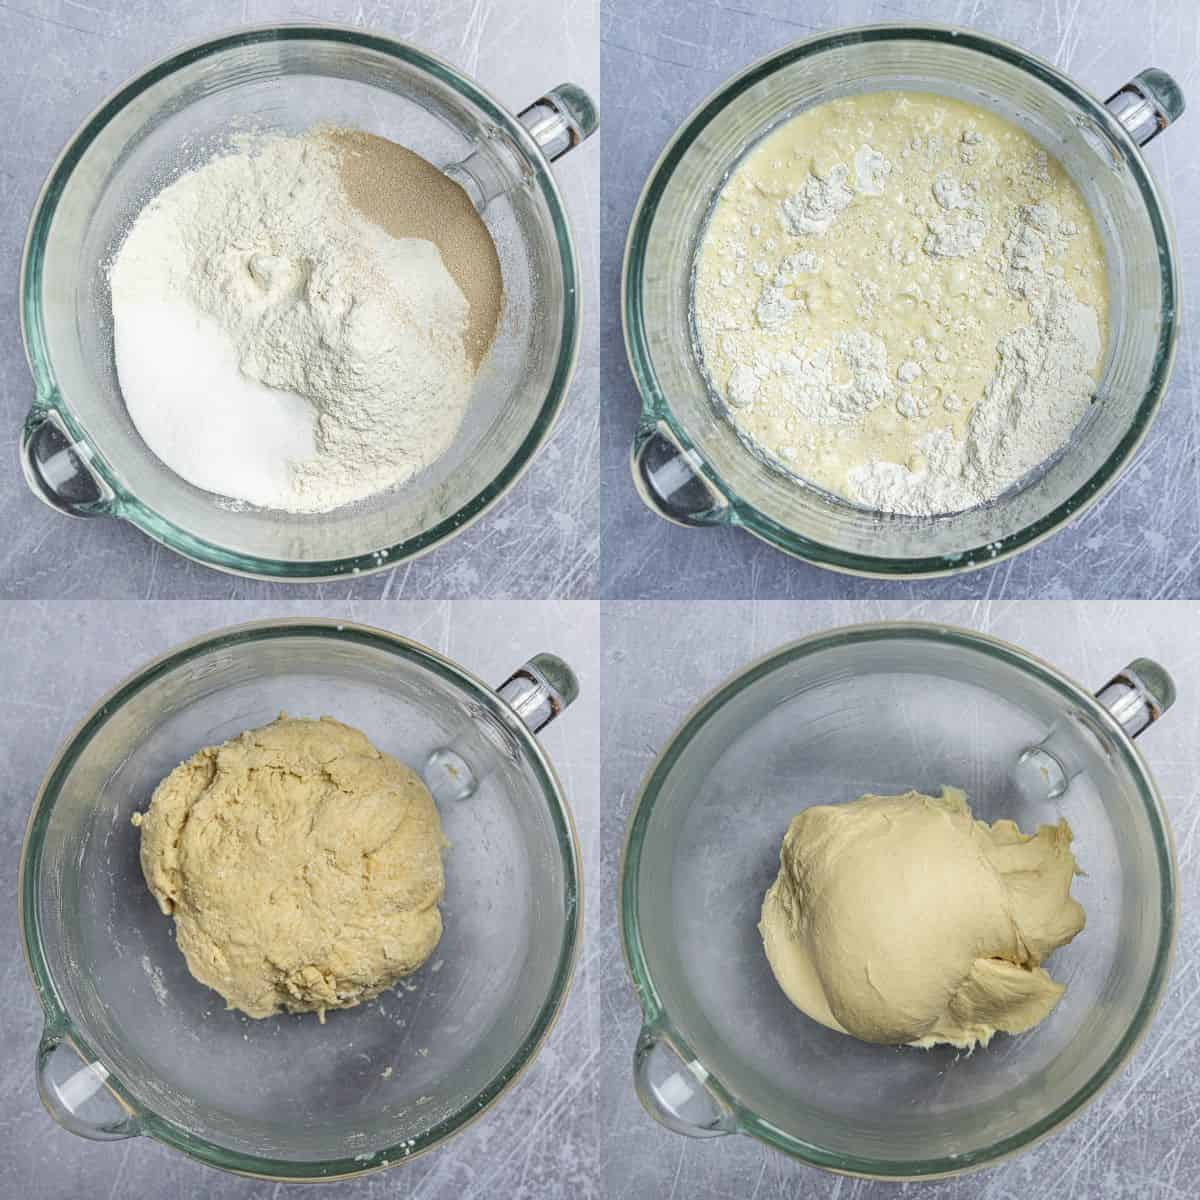 Step 2 - a four image collage of making the dough.